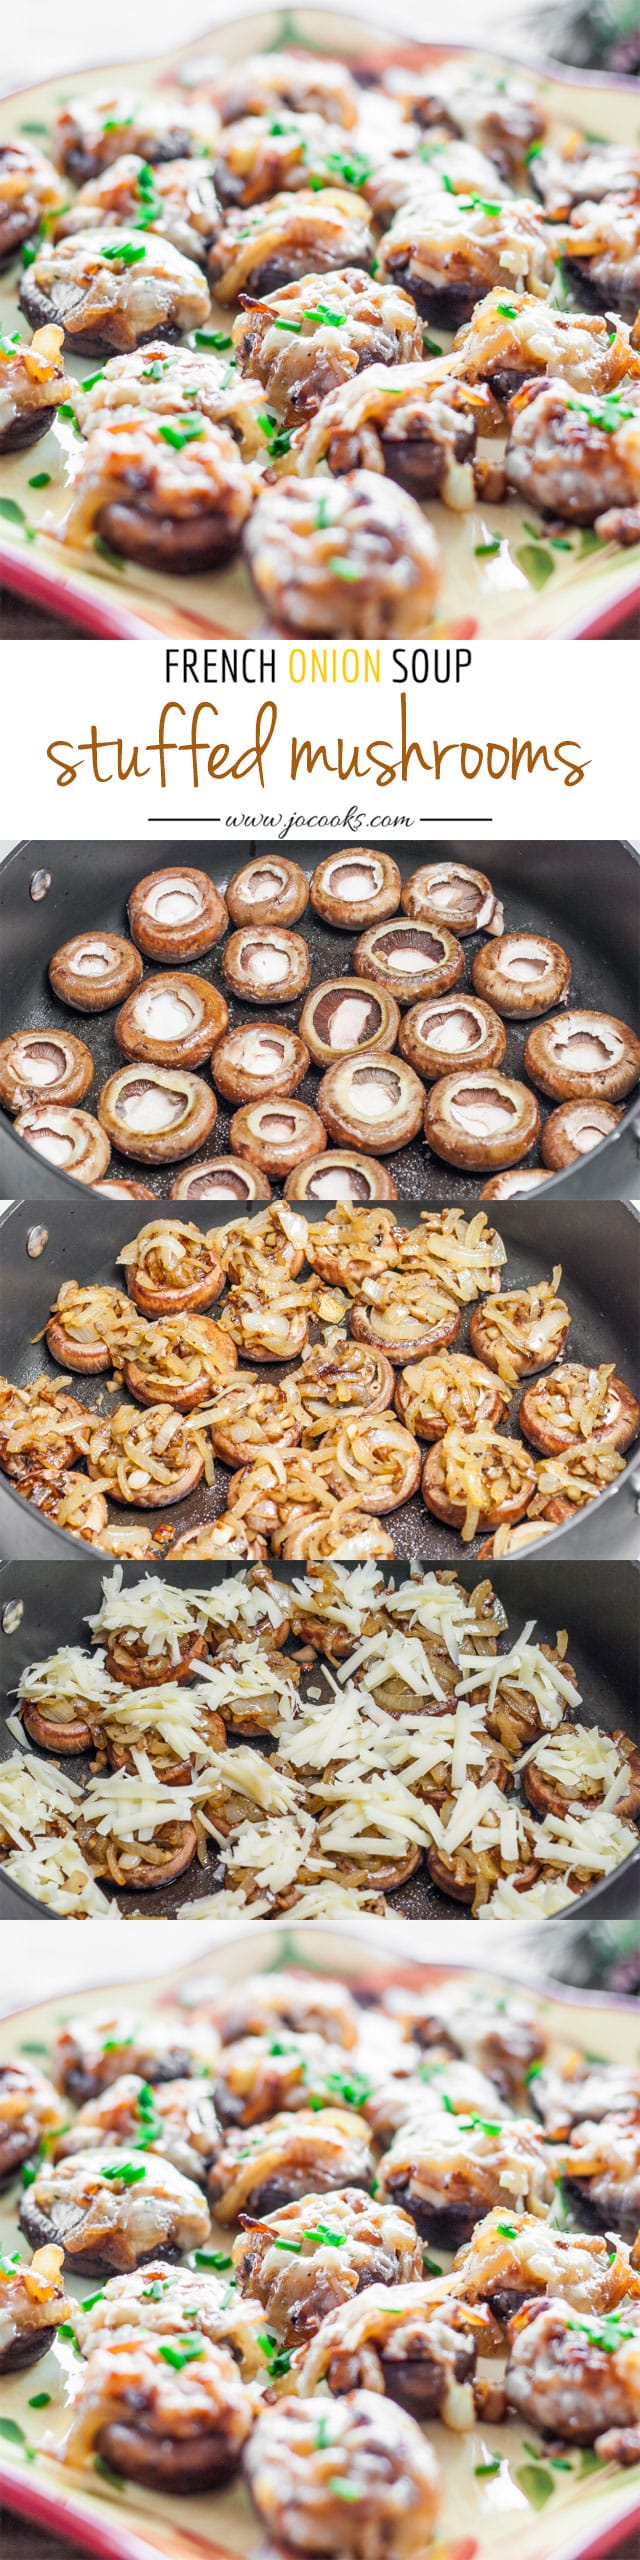 French Onion Soup Stuffed Mushrooms Recipes — Dishmaps